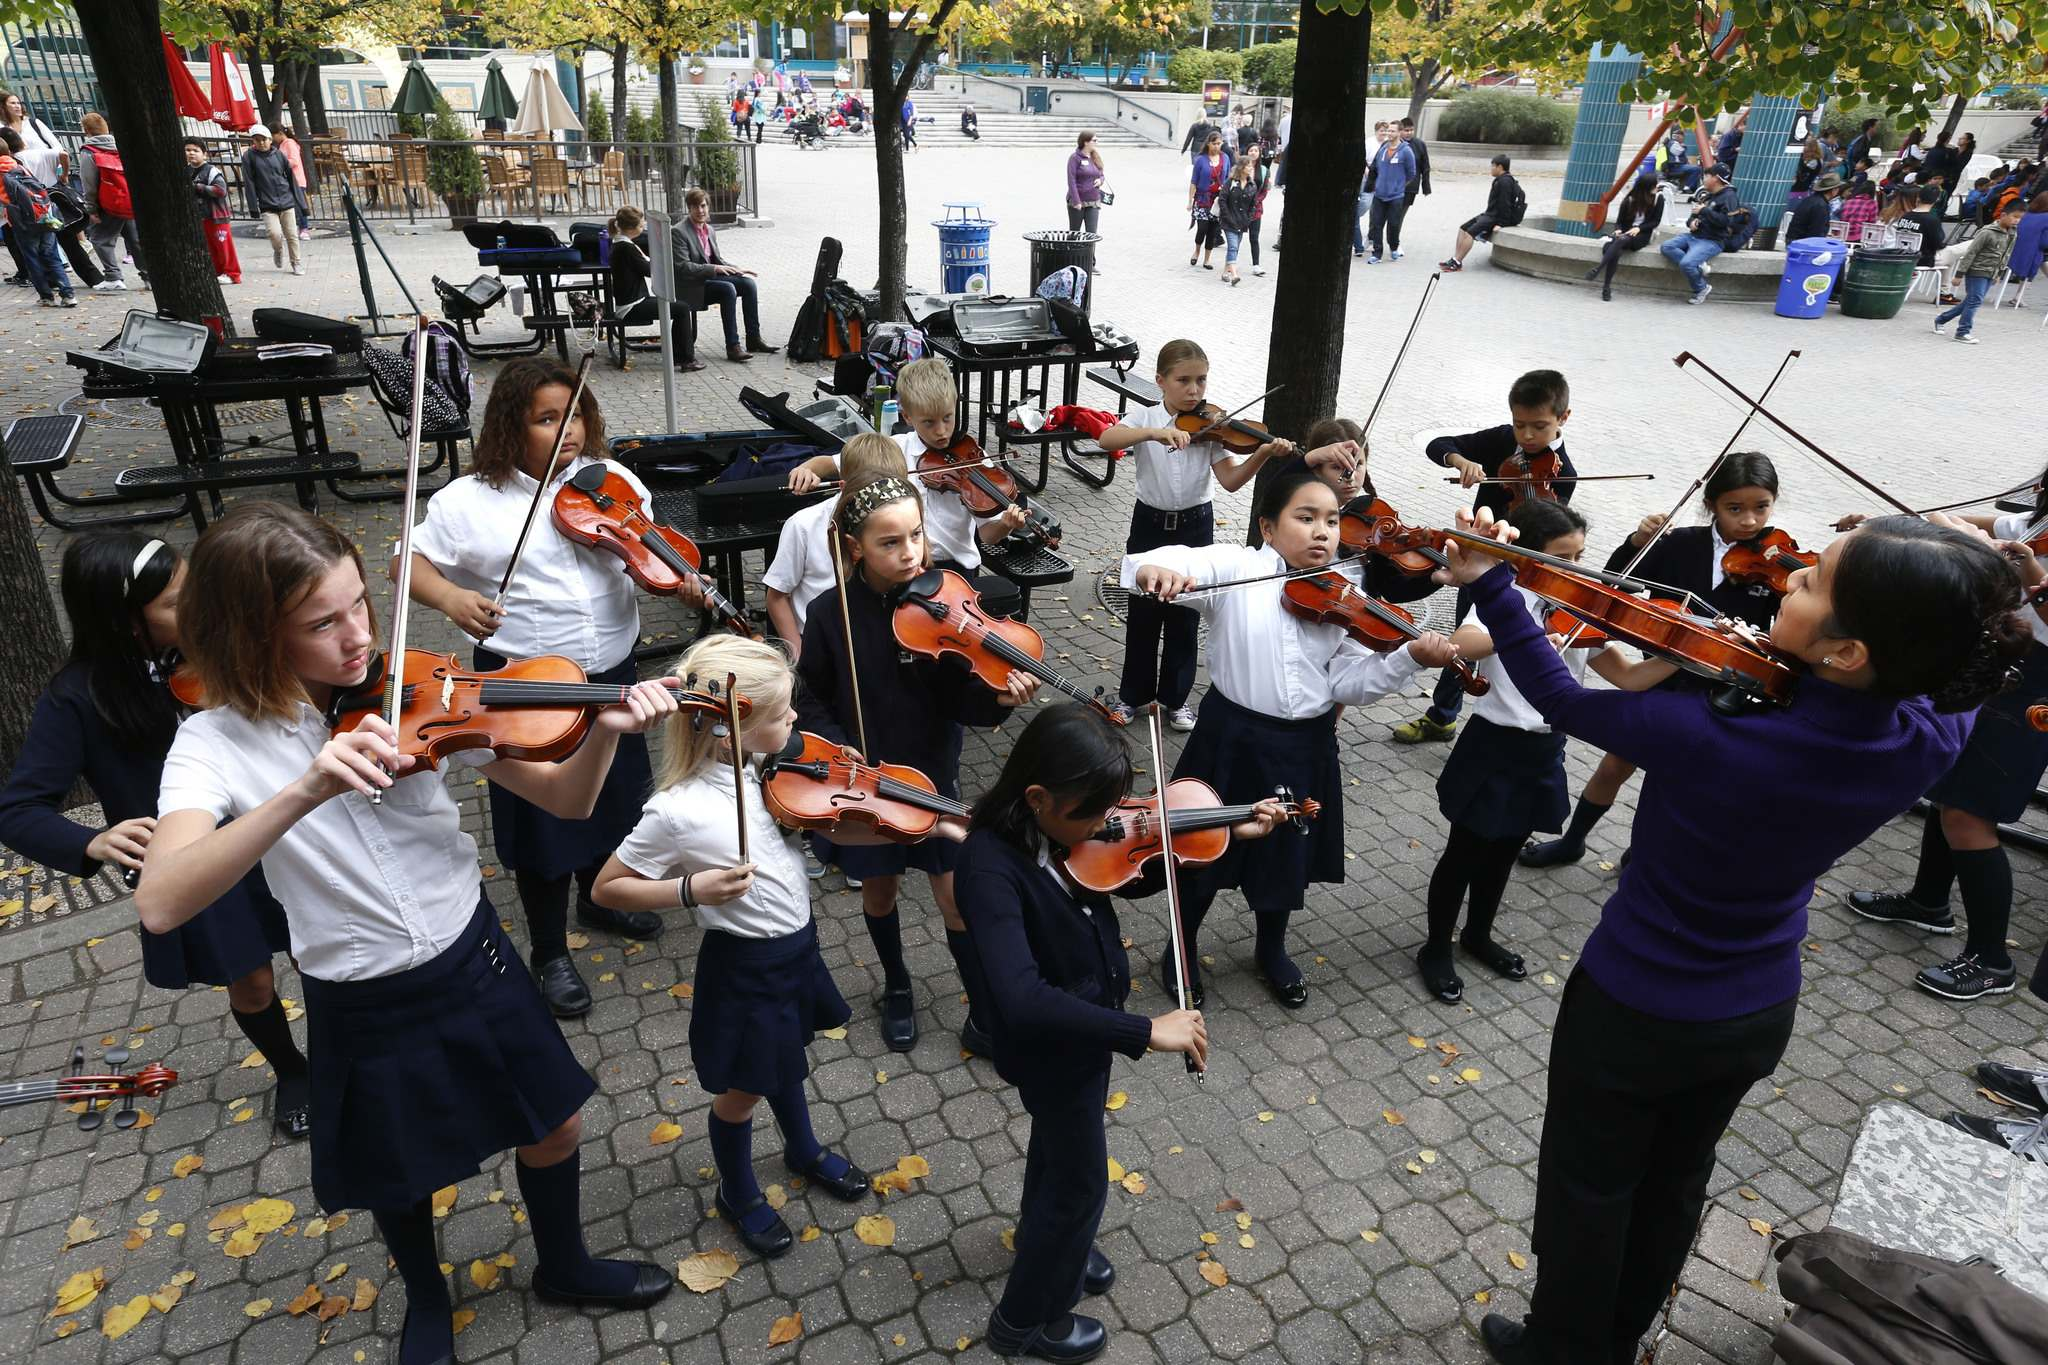 The St.Charles Catholic School&rsquo;s Junior Violin Ambassadors warm up with their music teacher Rachel Sham before hitting the stage at Manitoba&rsquo;s Culture Daysin 2015. (Wayne Glowacki / Winnipeg Free Press files)</p>